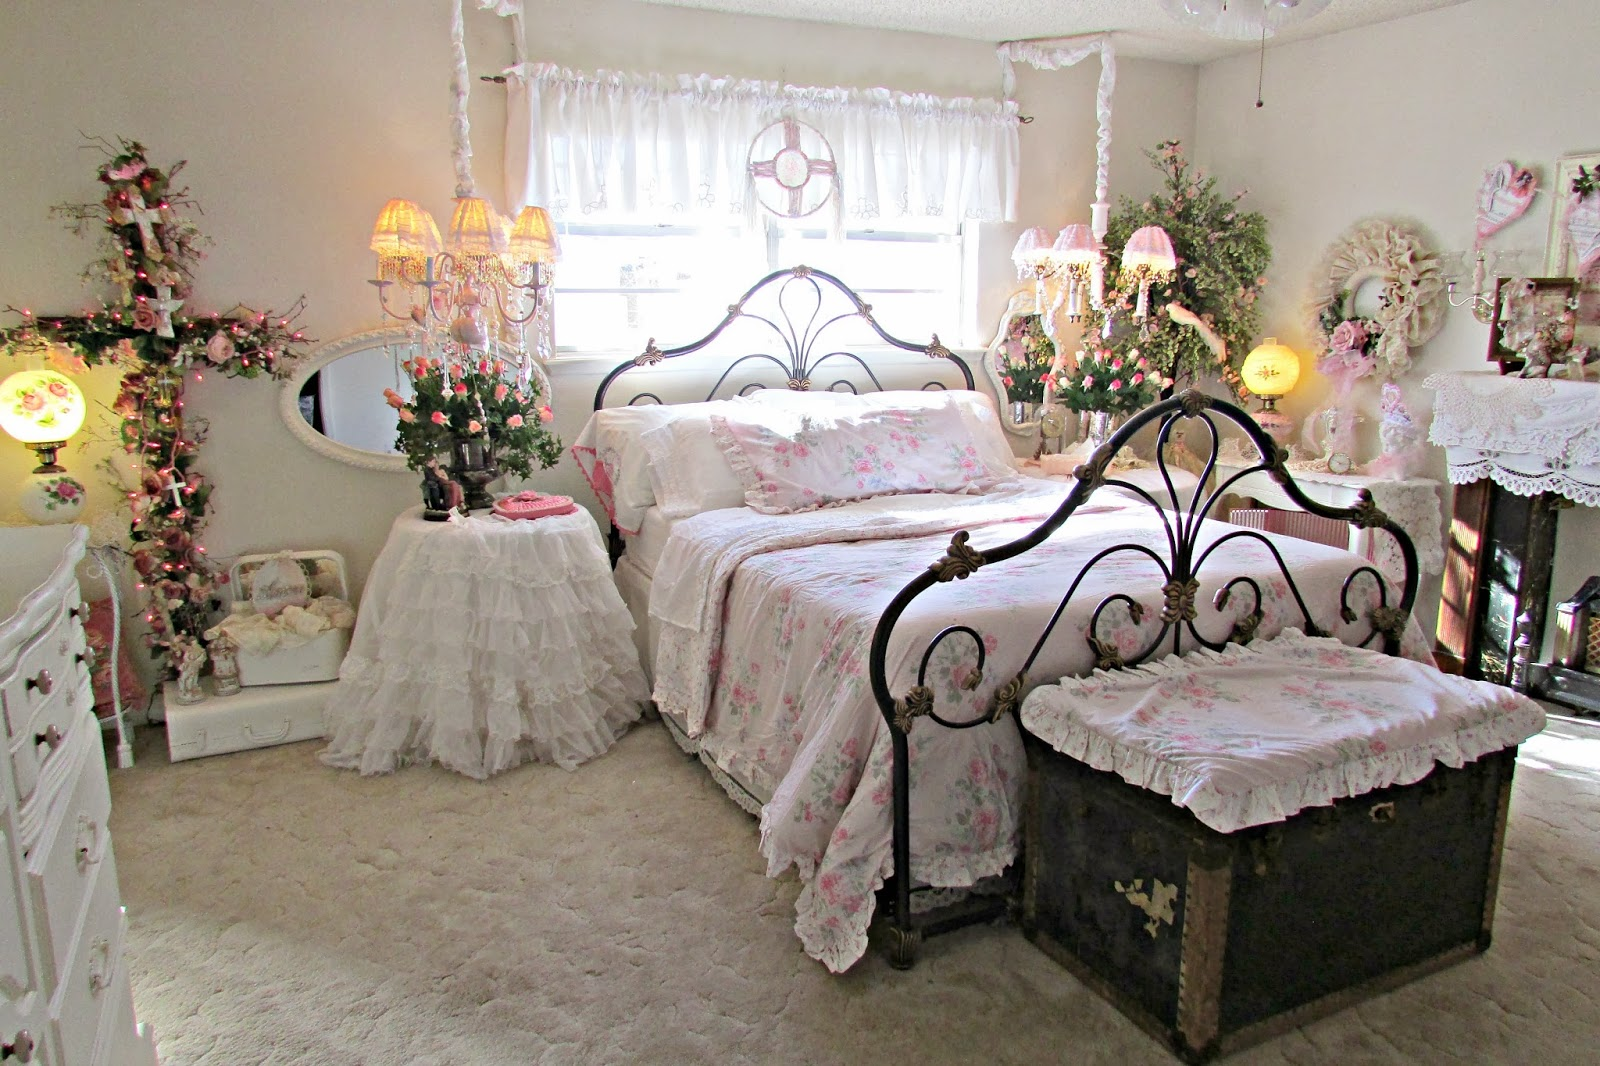 penny's vintage home: romantic ideas for decorating your bedroom